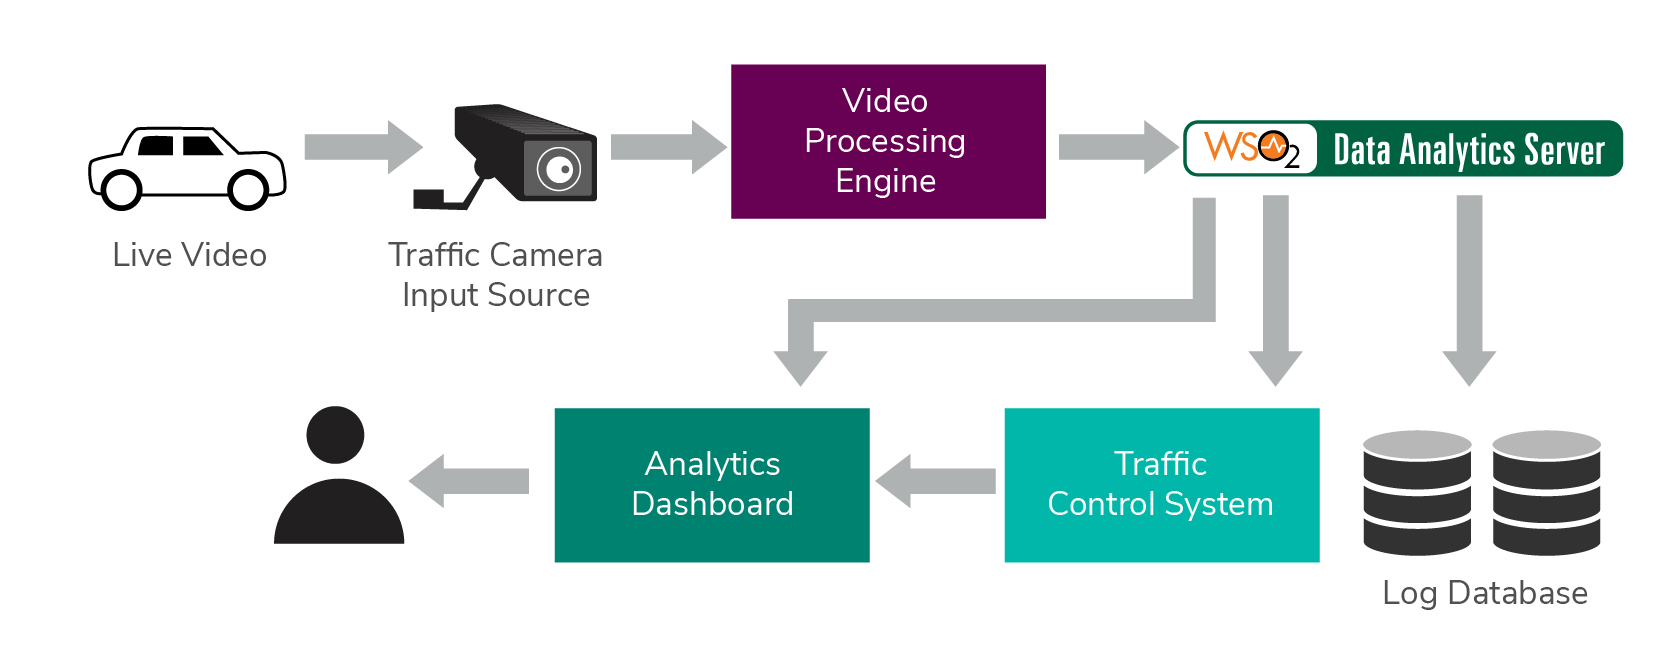 Figure 6: Overview of the Traffic Controlling System